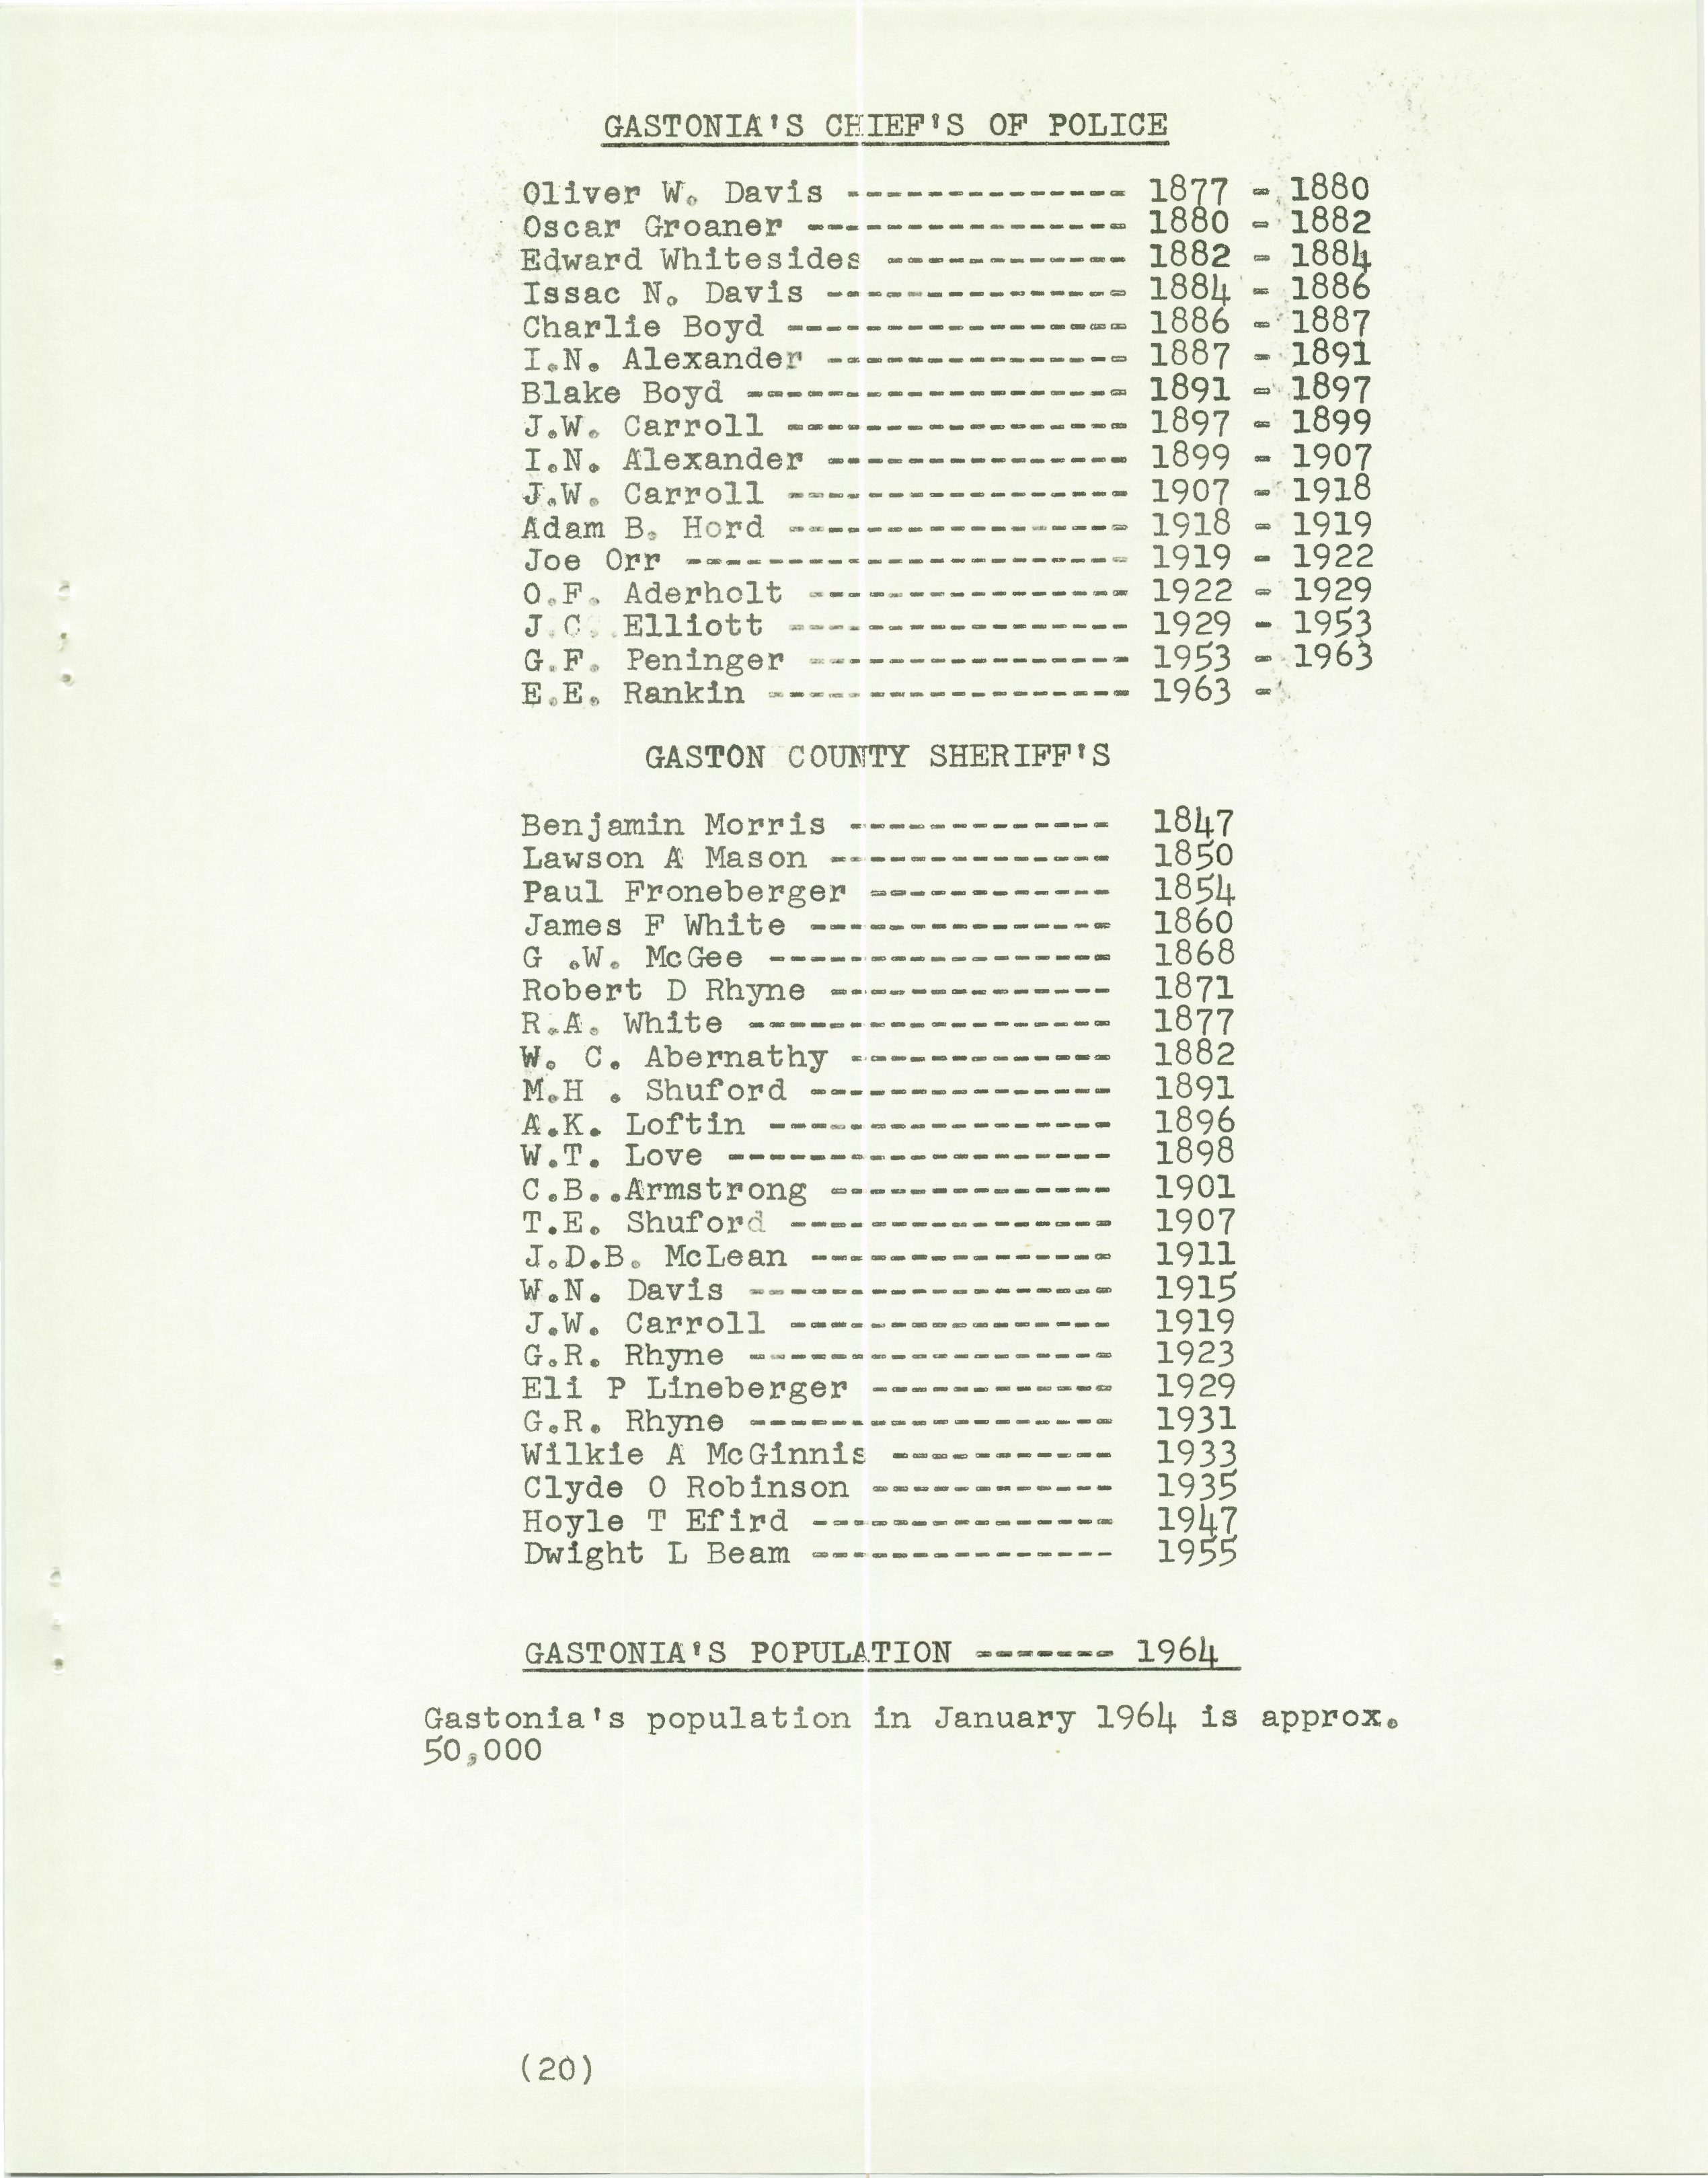 History of the Gastonia Police Department_Page_21